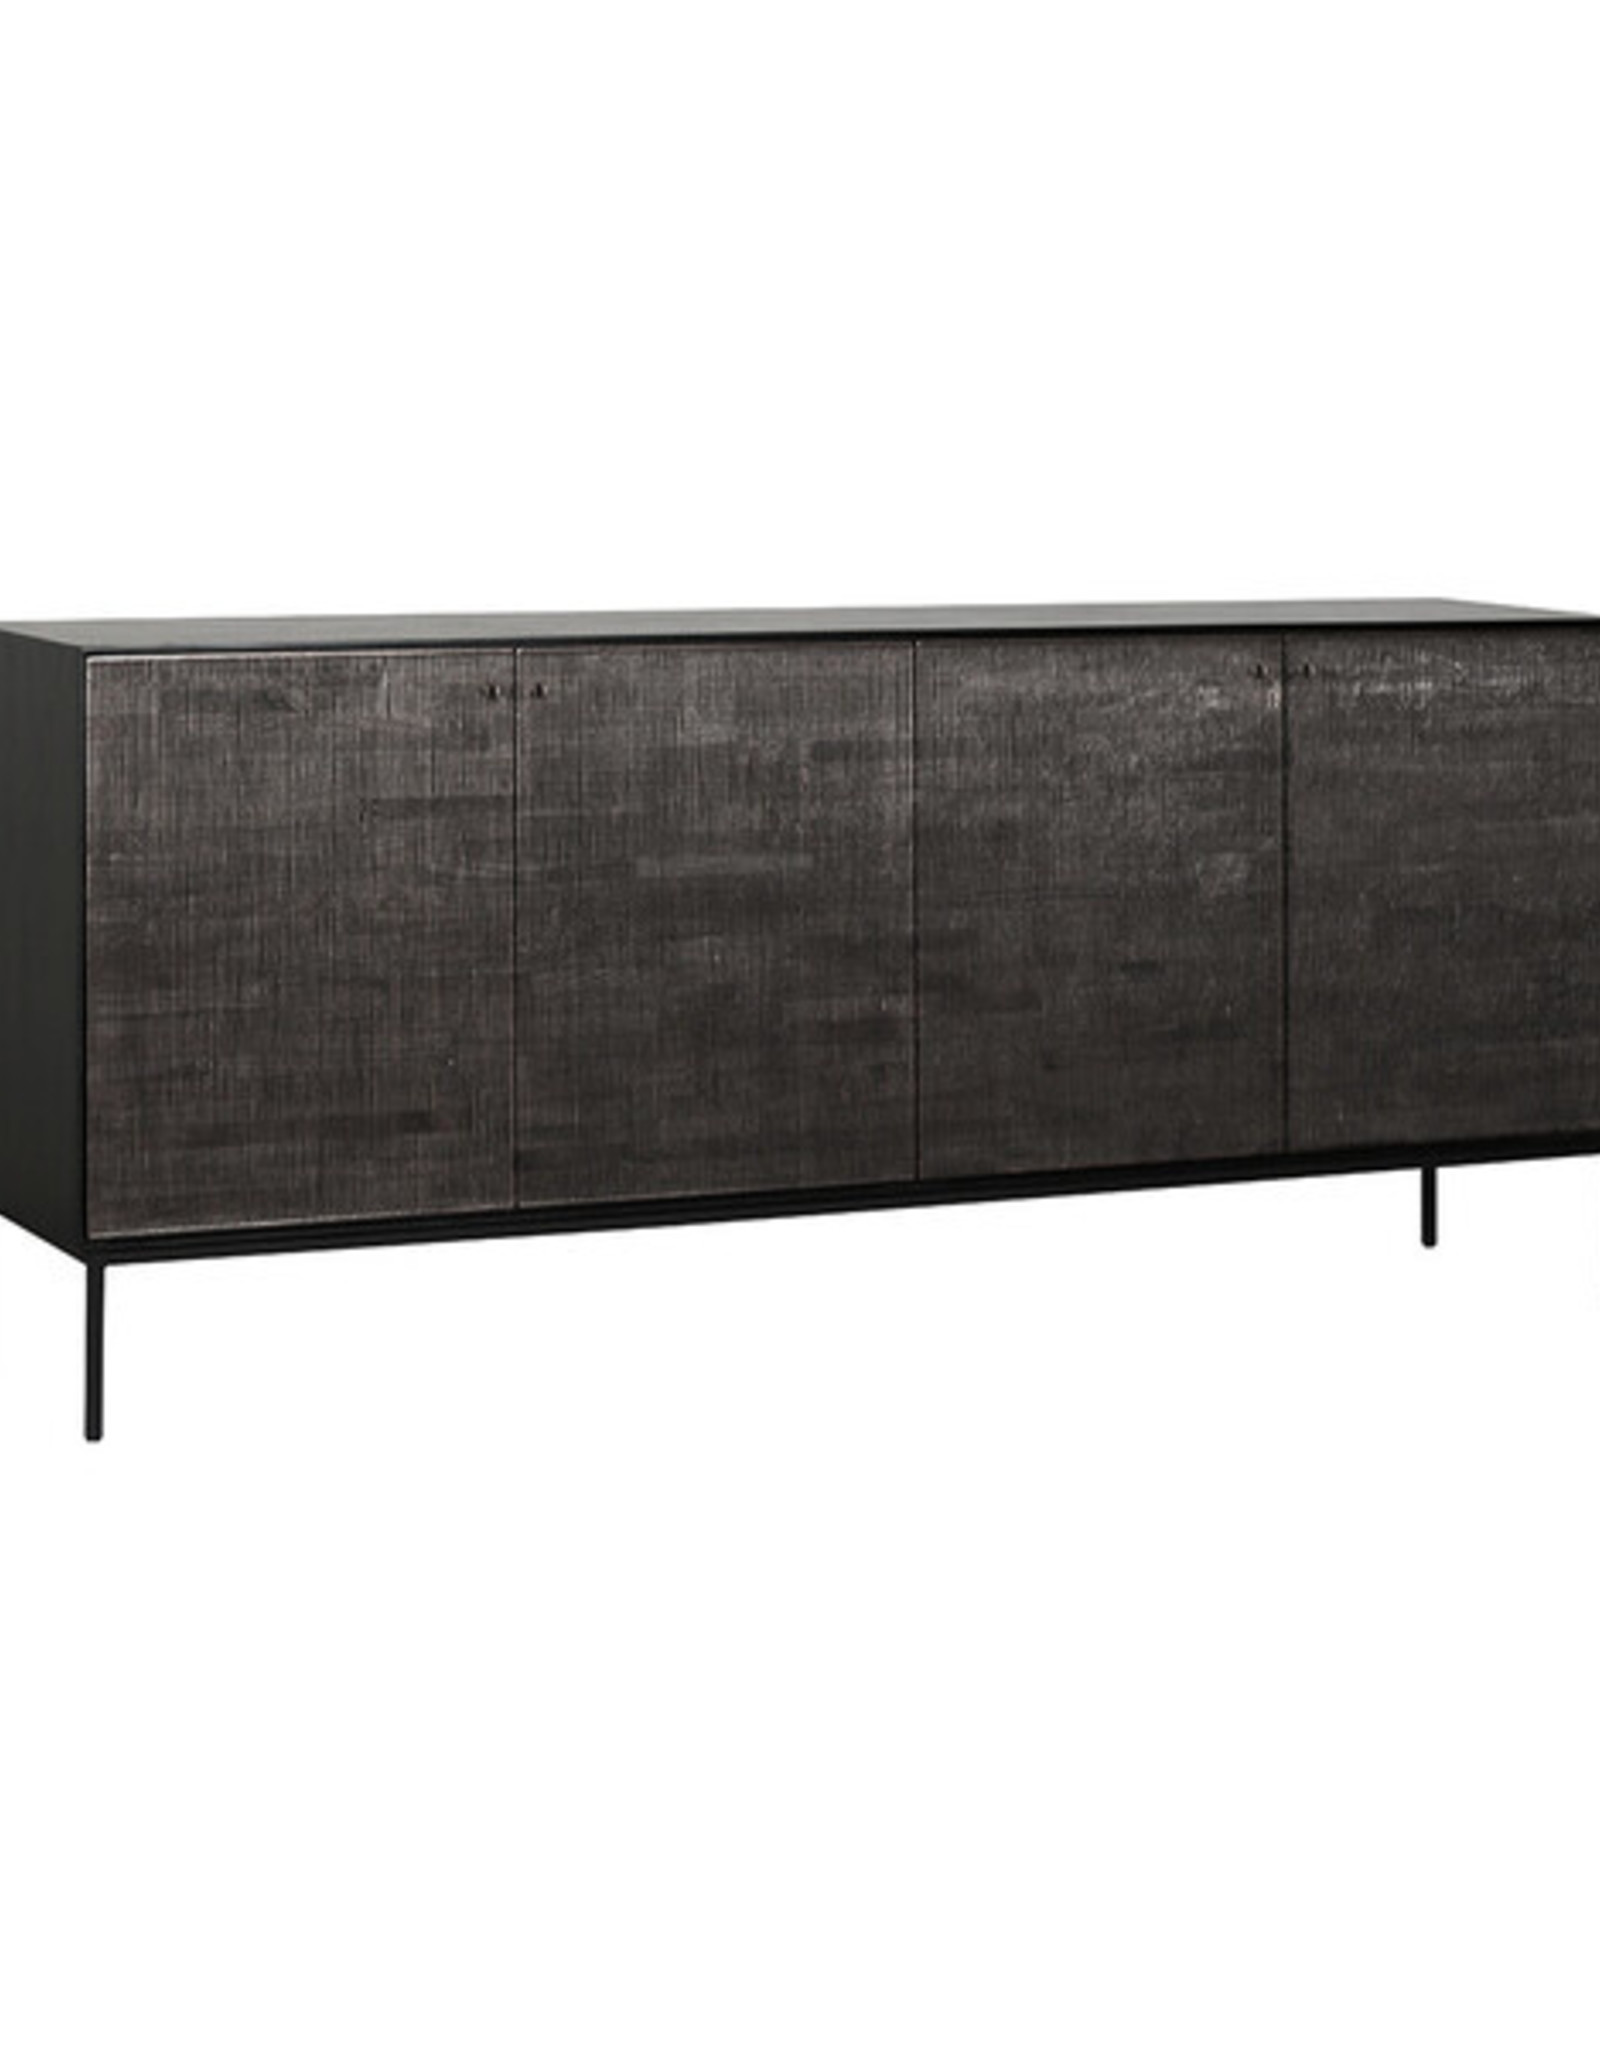 Ethnicraft USA LLC Teak Grooves Sideboard 4 Doors